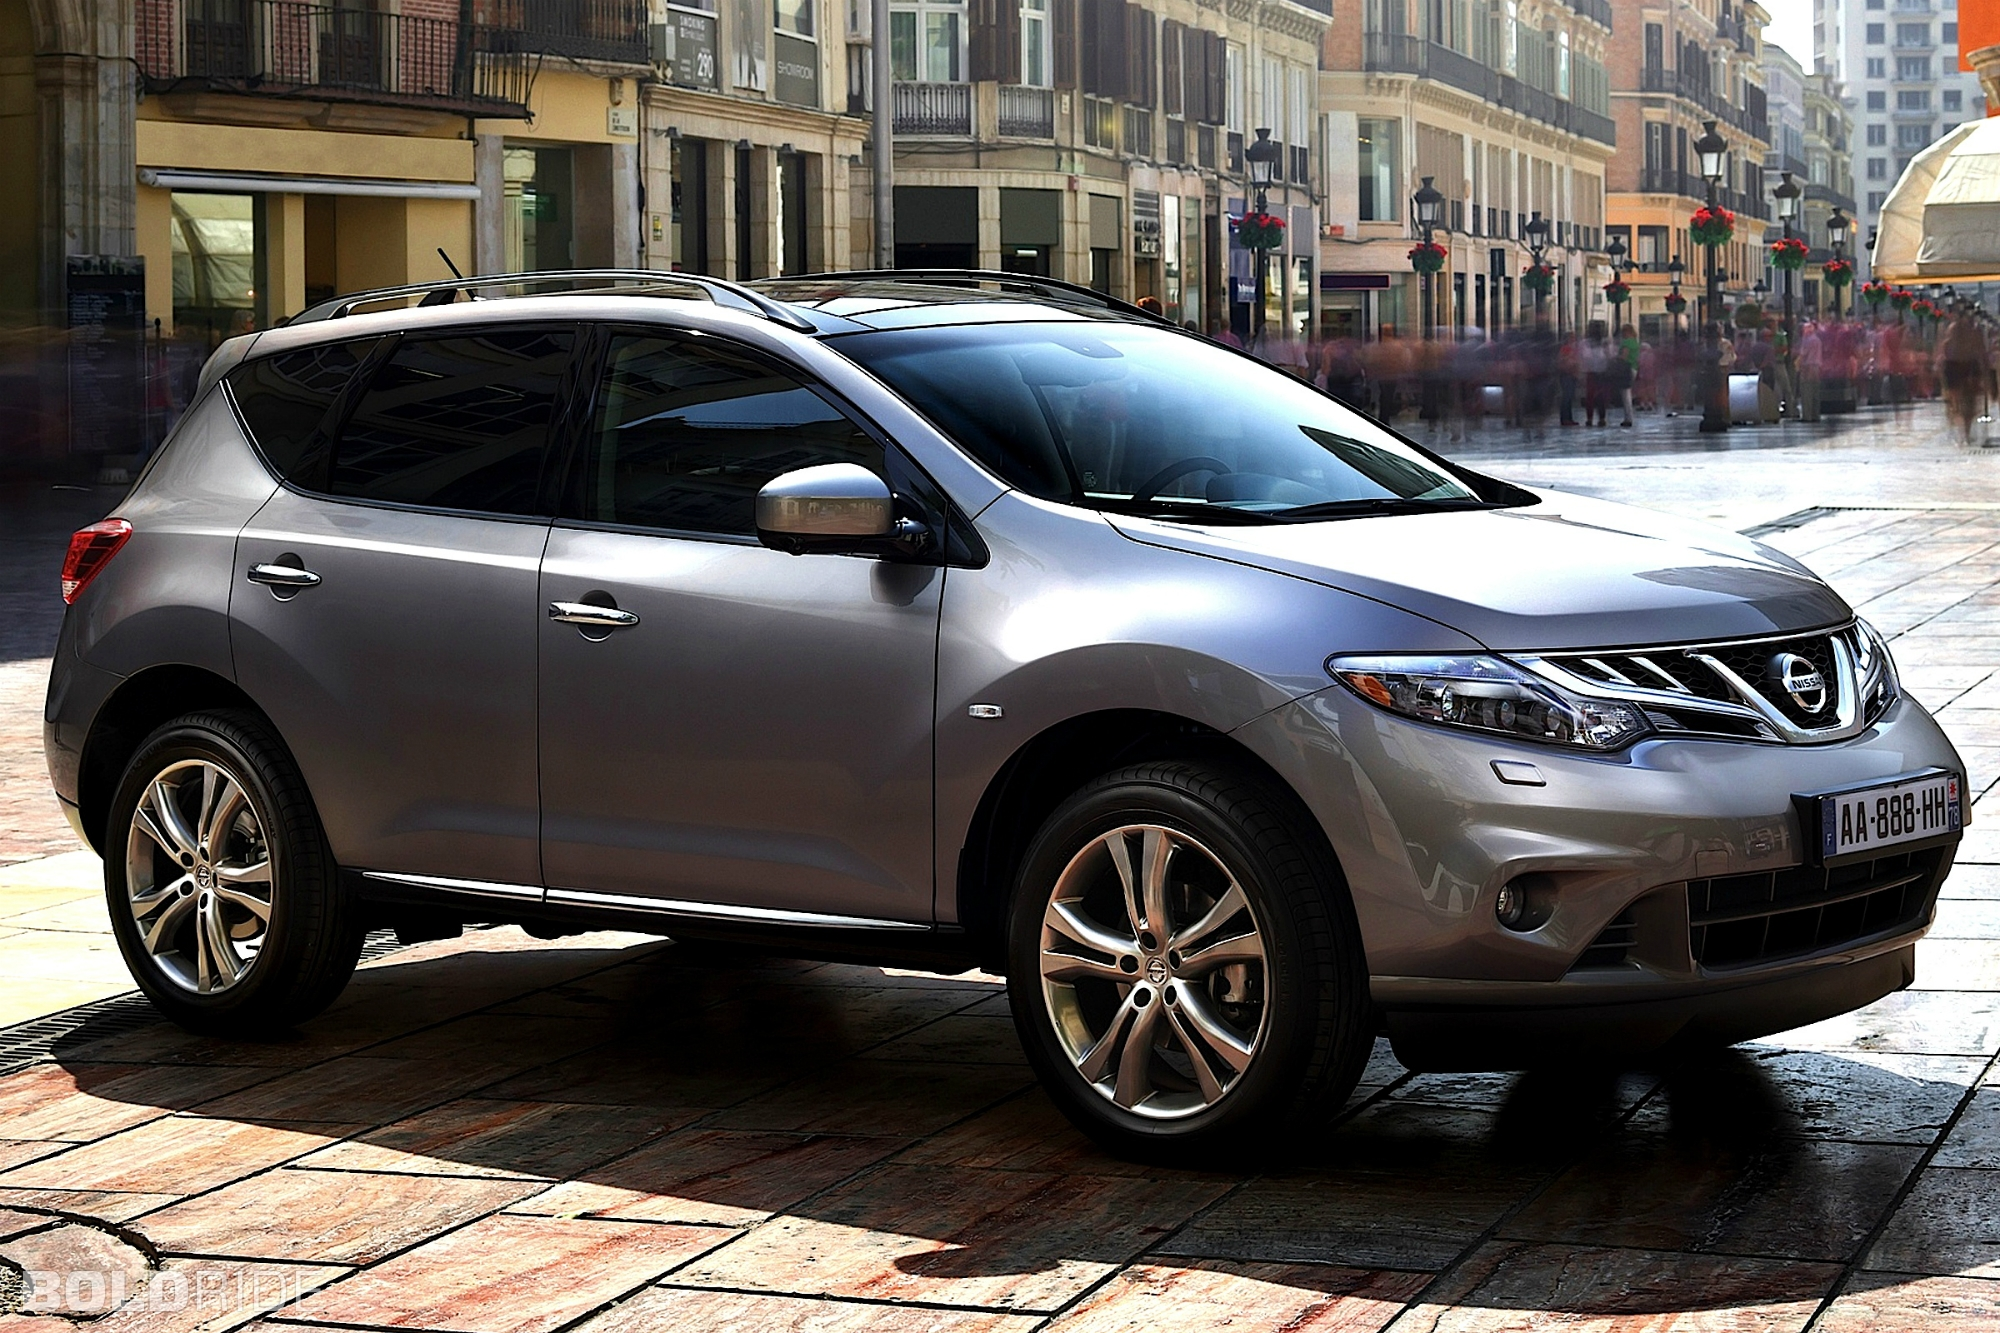 2012 nissan murano information and photos zombiedrive. Black Bedroom Furniture Sets. Home Design Ideas